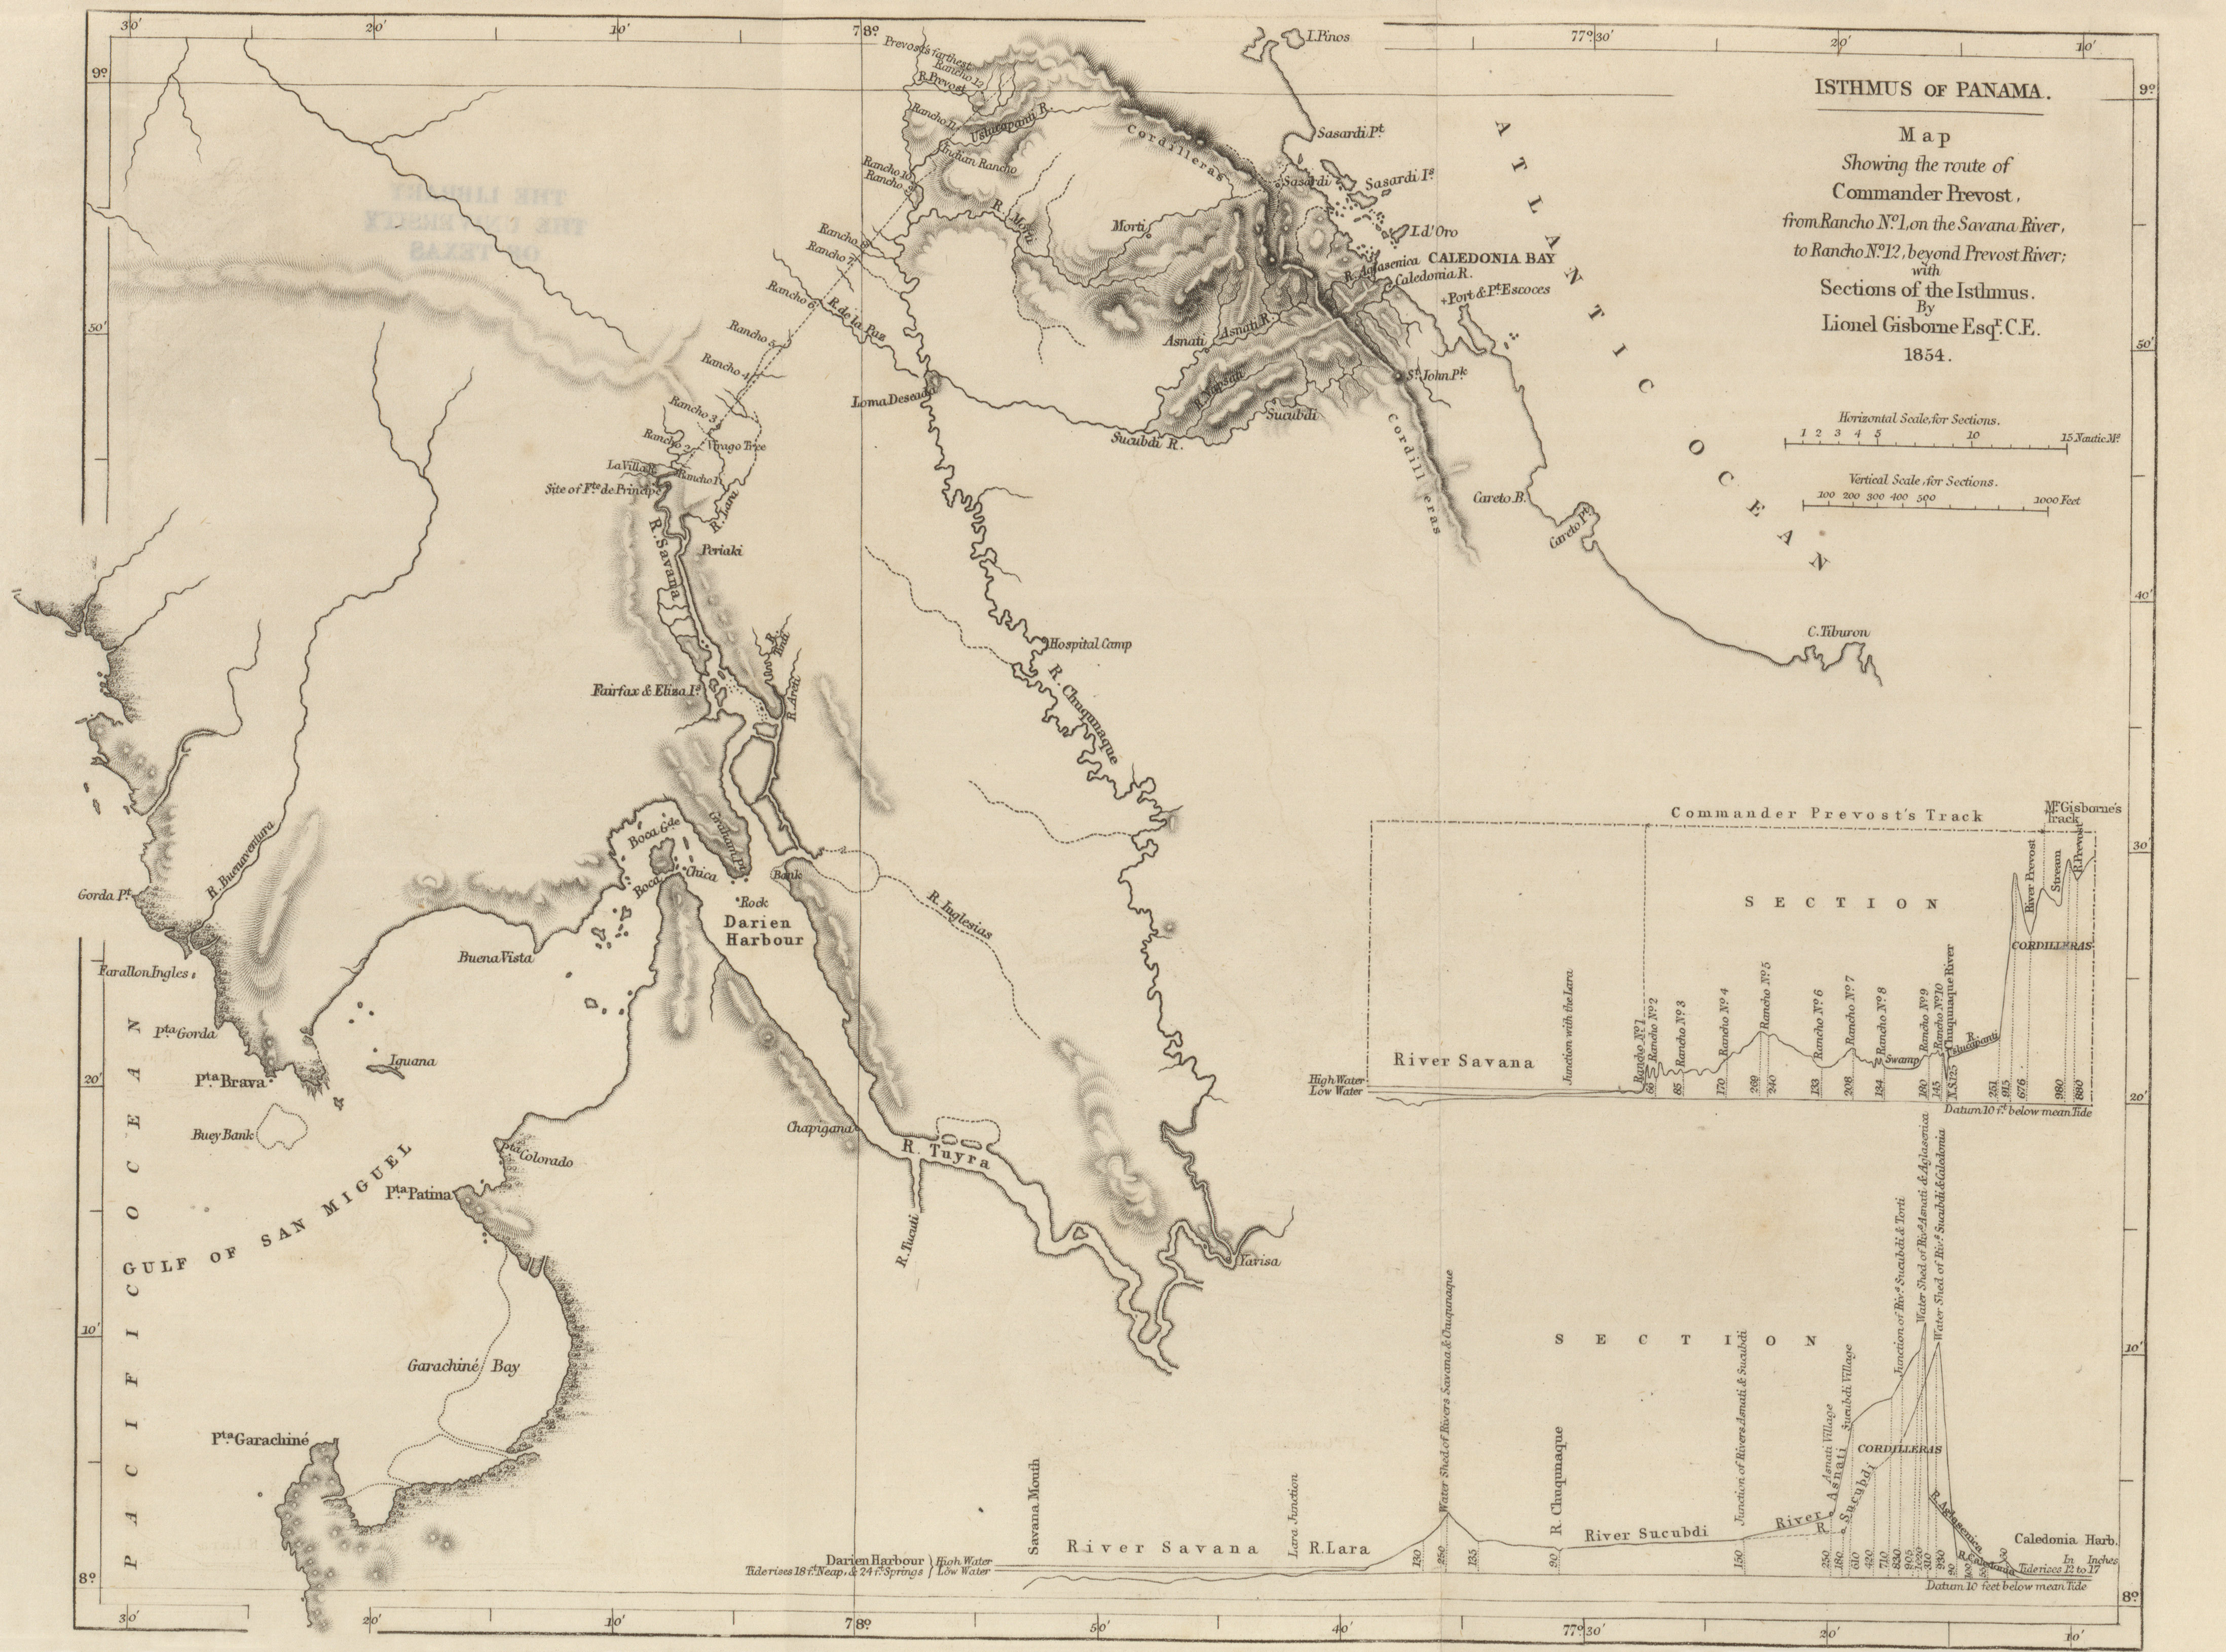 Map Showing The Route Of Commander Prevost With Sections Of The Isthmus Lionel Gisborne